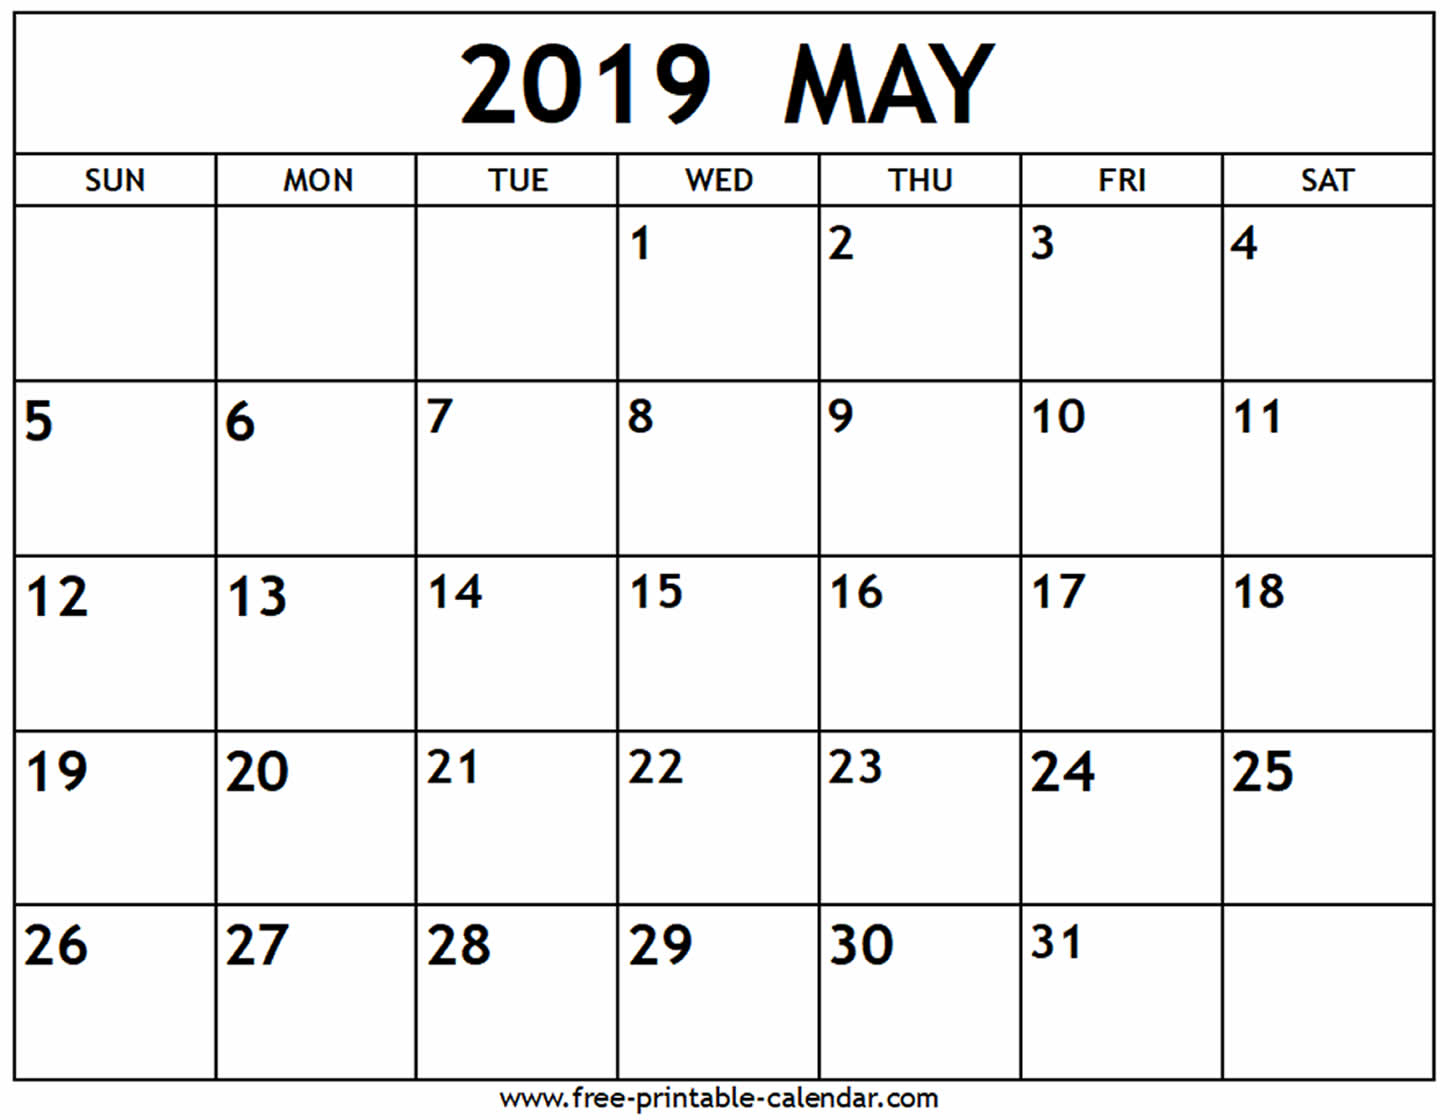 May 2019 Calendar - Free-Printable-Calendar pertaining to Need A Blank Calendar With Lines